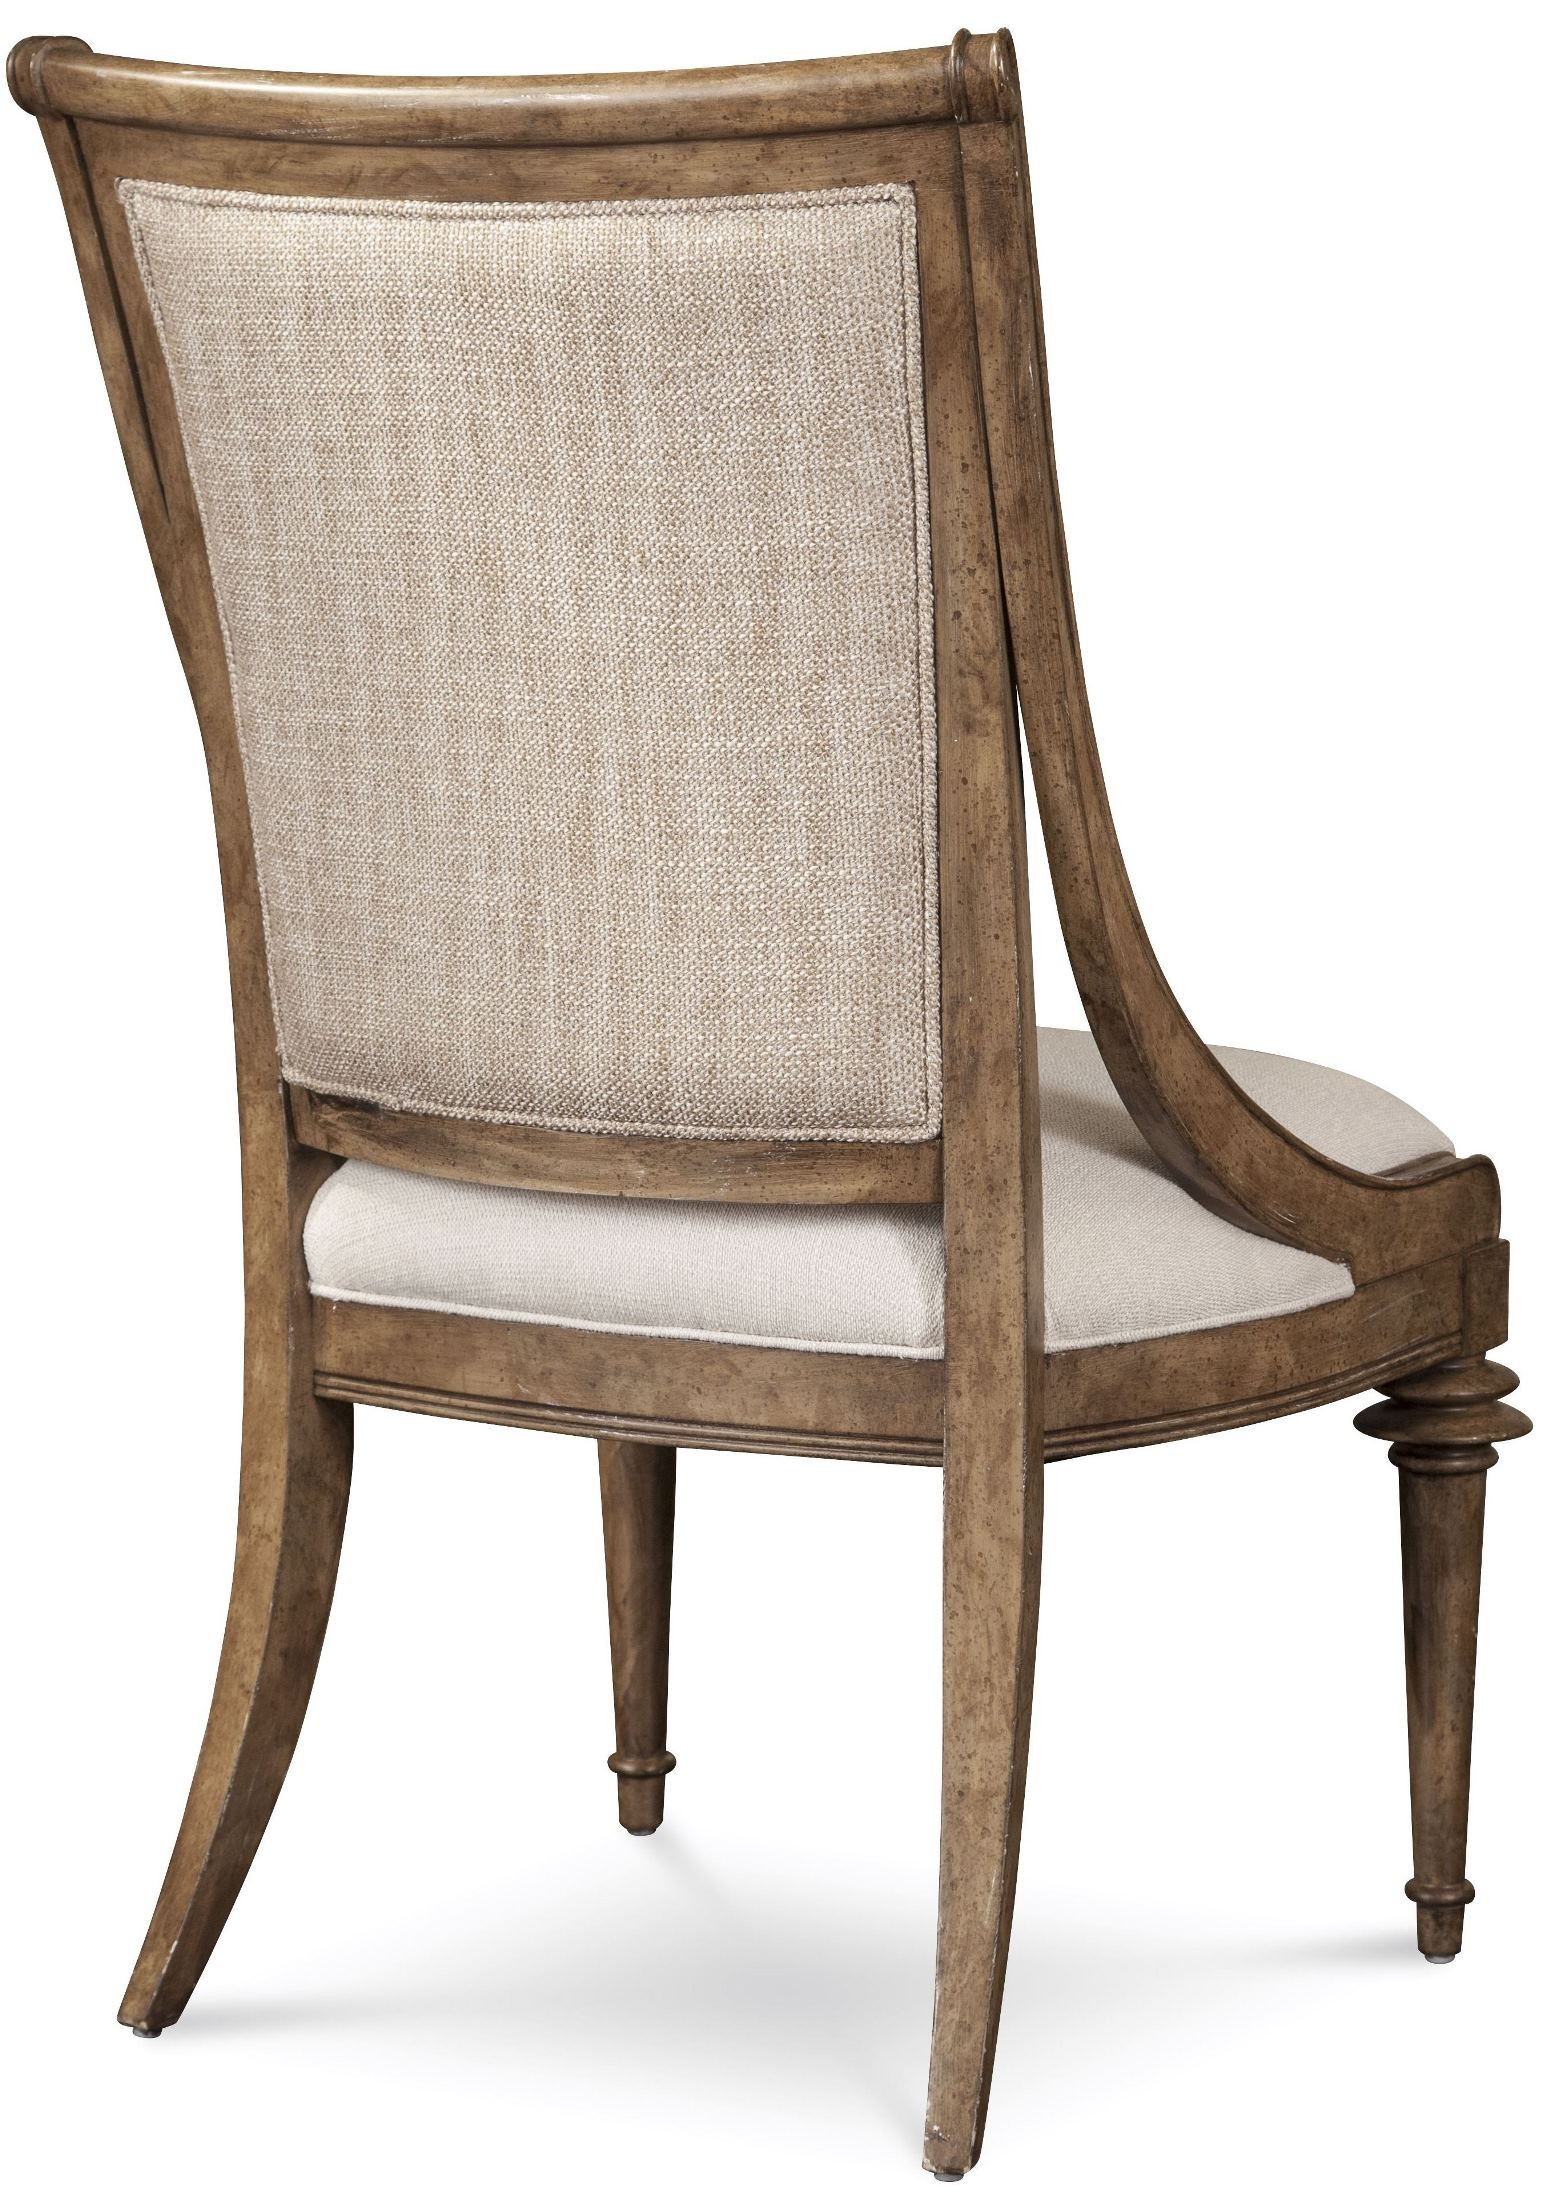 Pavilion Chair Pavilion Upholstered Back Sling Chair From Art 229201